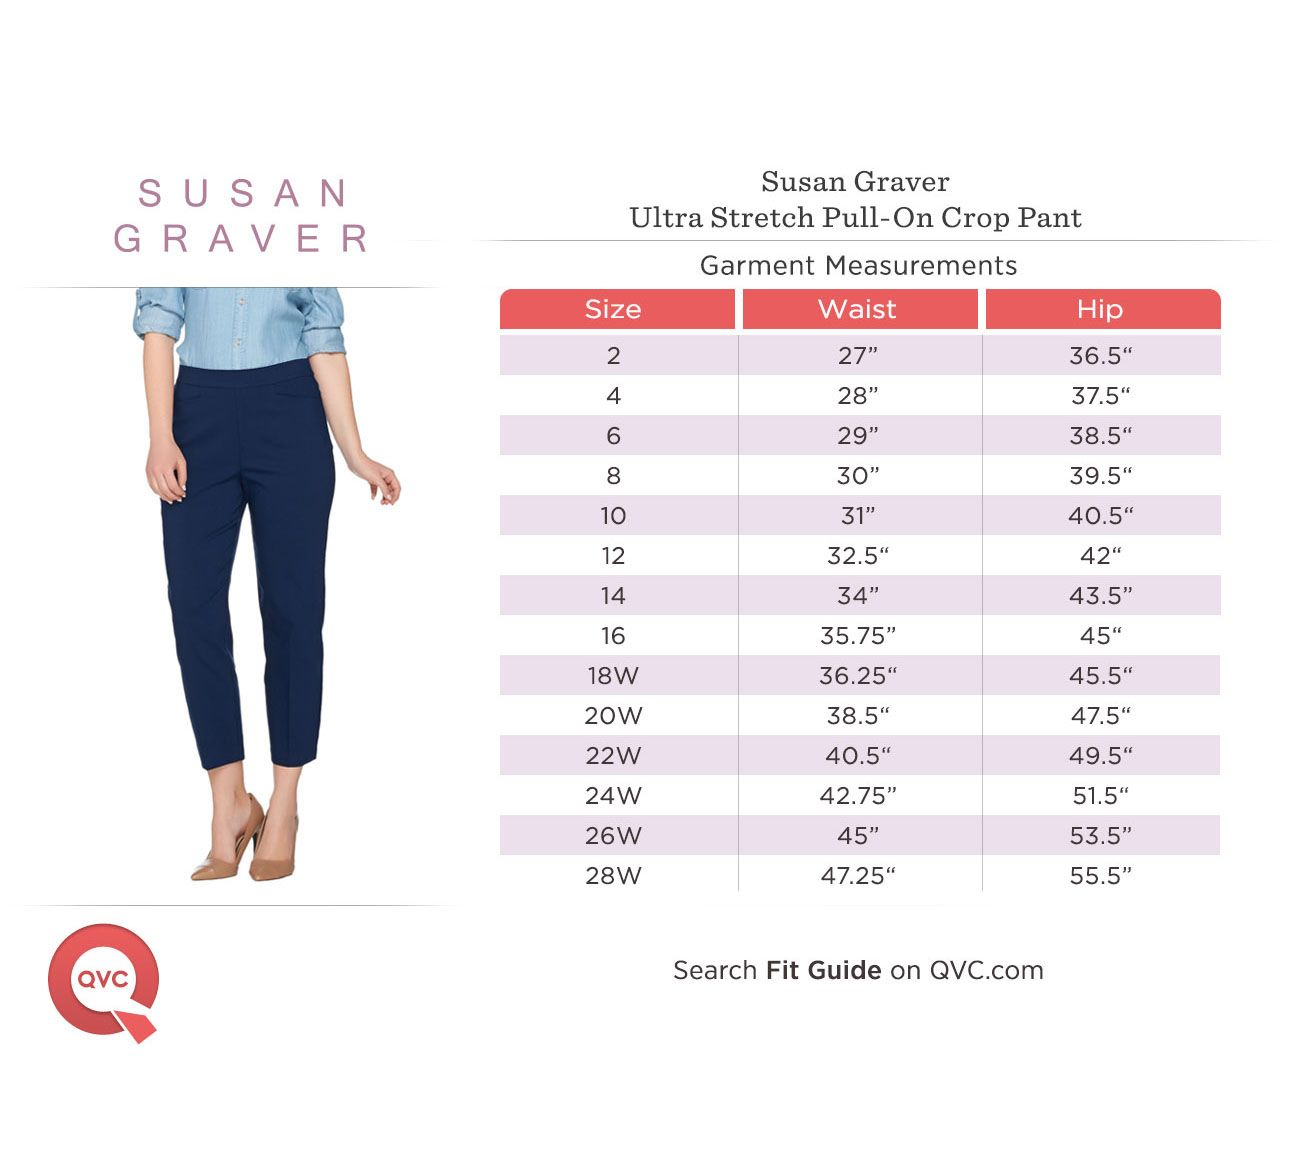 As Is Susan Graver Regular Ultra Stretch Pull On Crop Pants Qvc Com